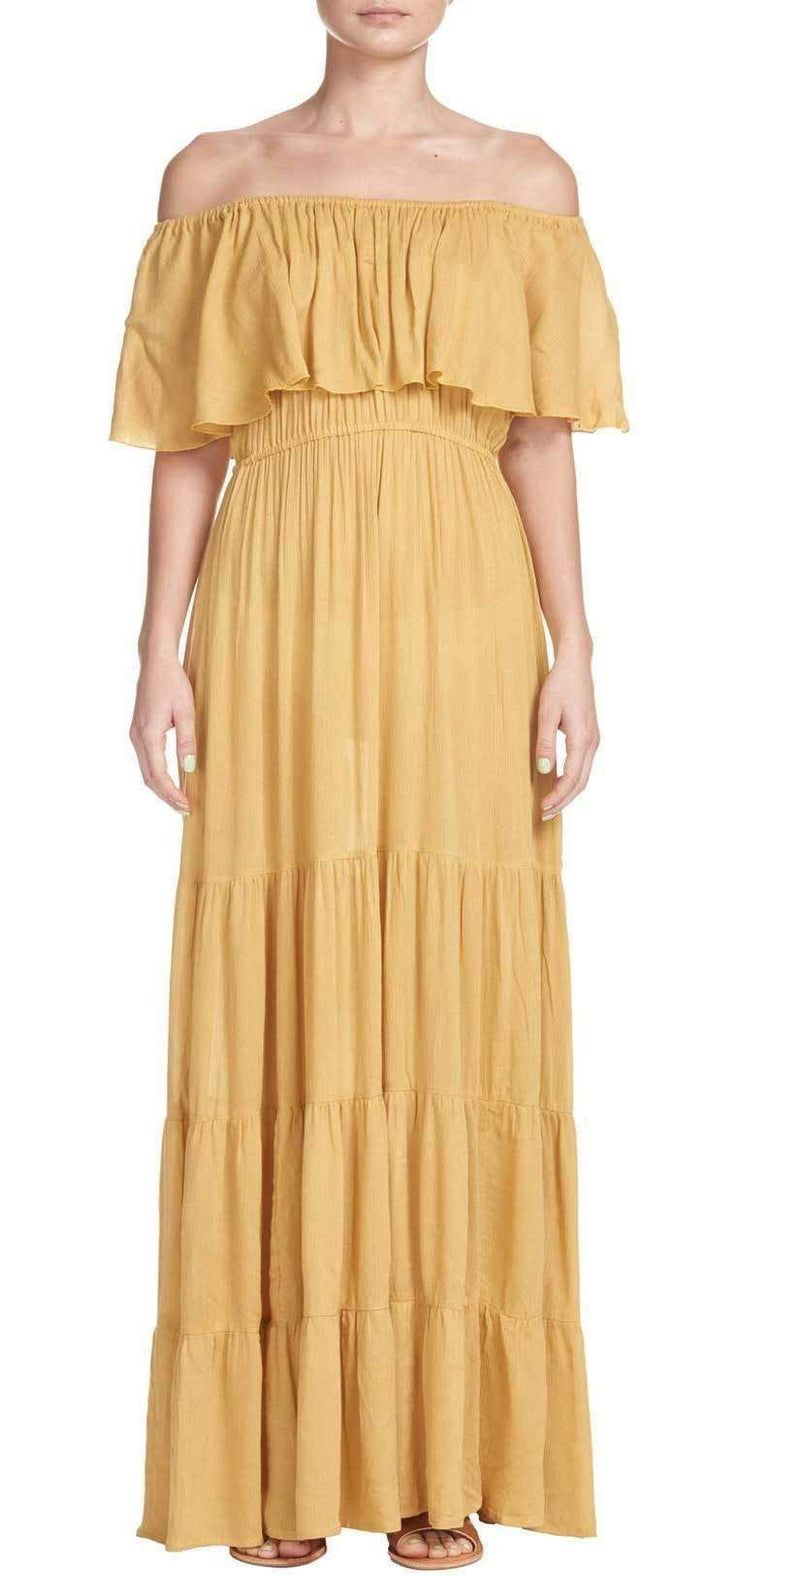 Elan Long Maxi In Mustard RG5463 MUS: